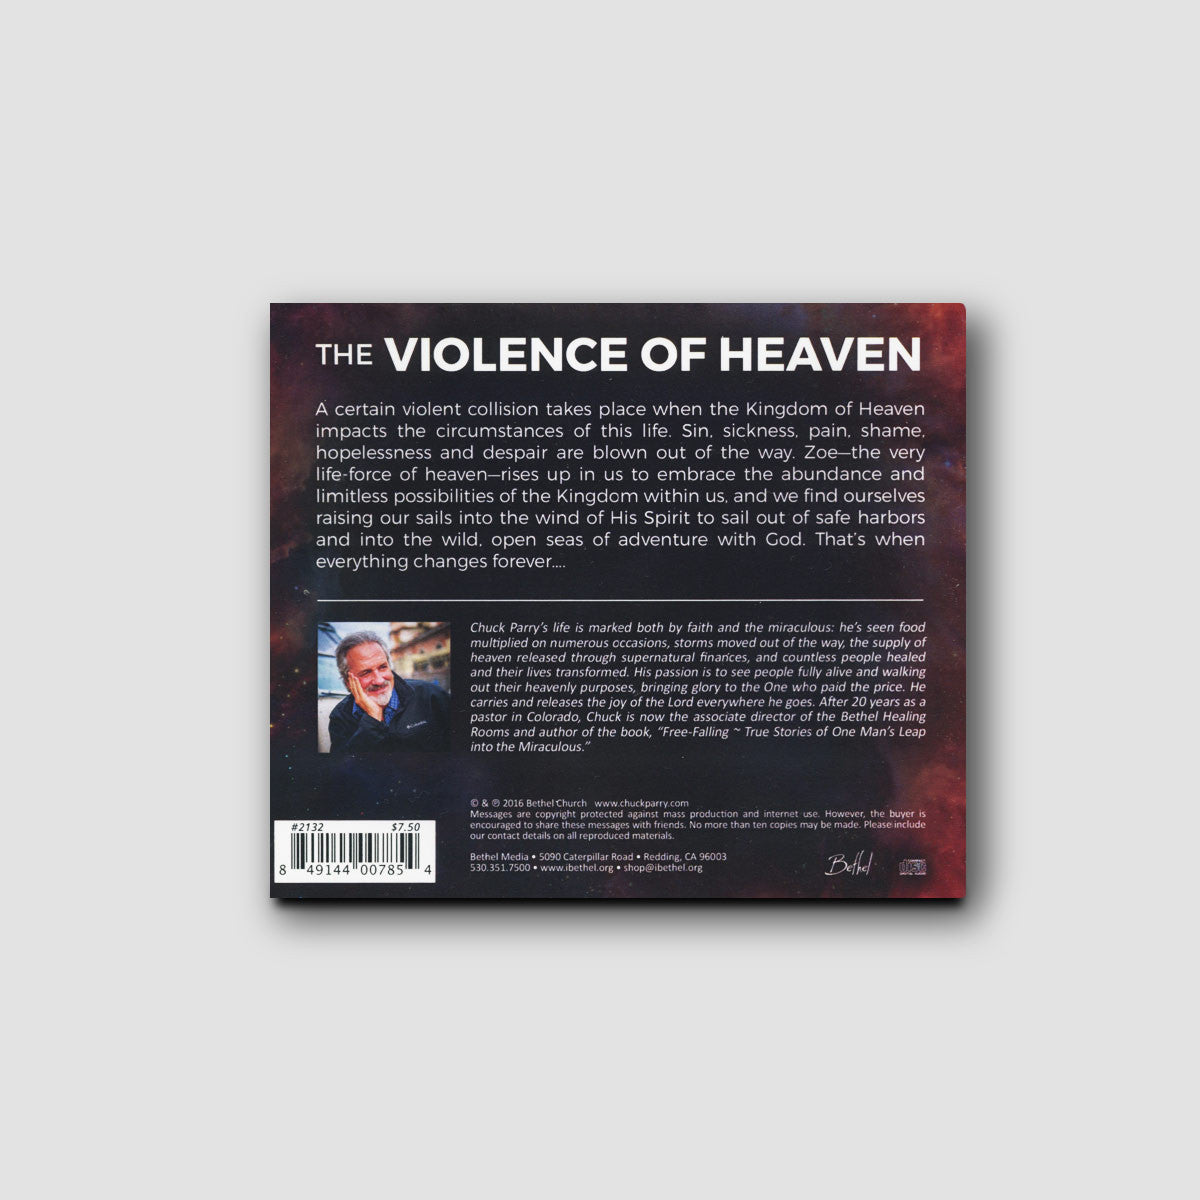 The Violence of Heaven